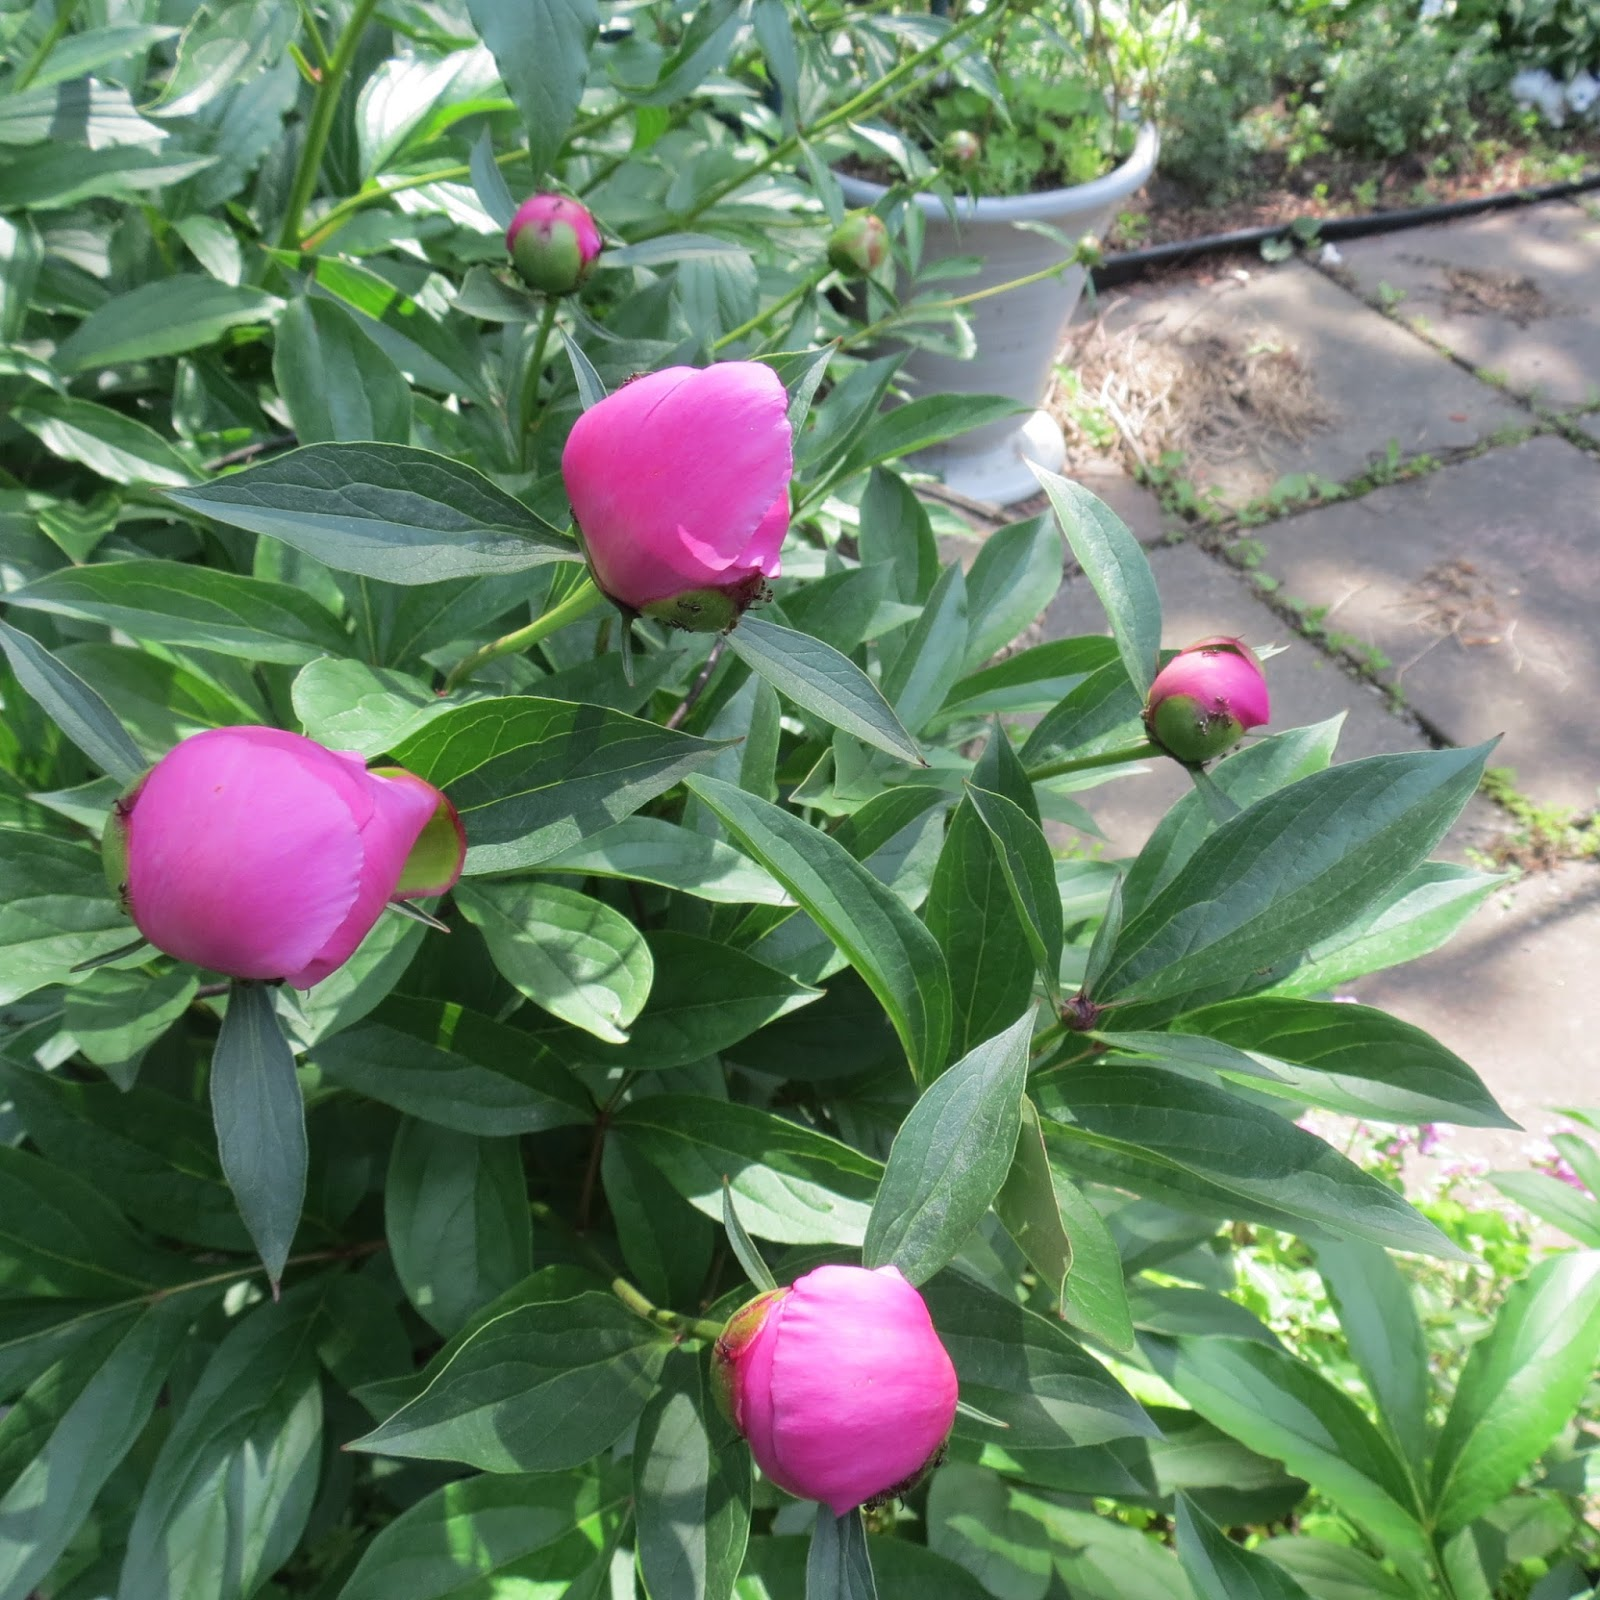 Adventures in pei and beyond what do tiny ants do for flowers and i planted a few peony shrubs years ago in my garden every year around the beginning of june we look forward to seeing the bright pink flowers blooming and mightylinksfo